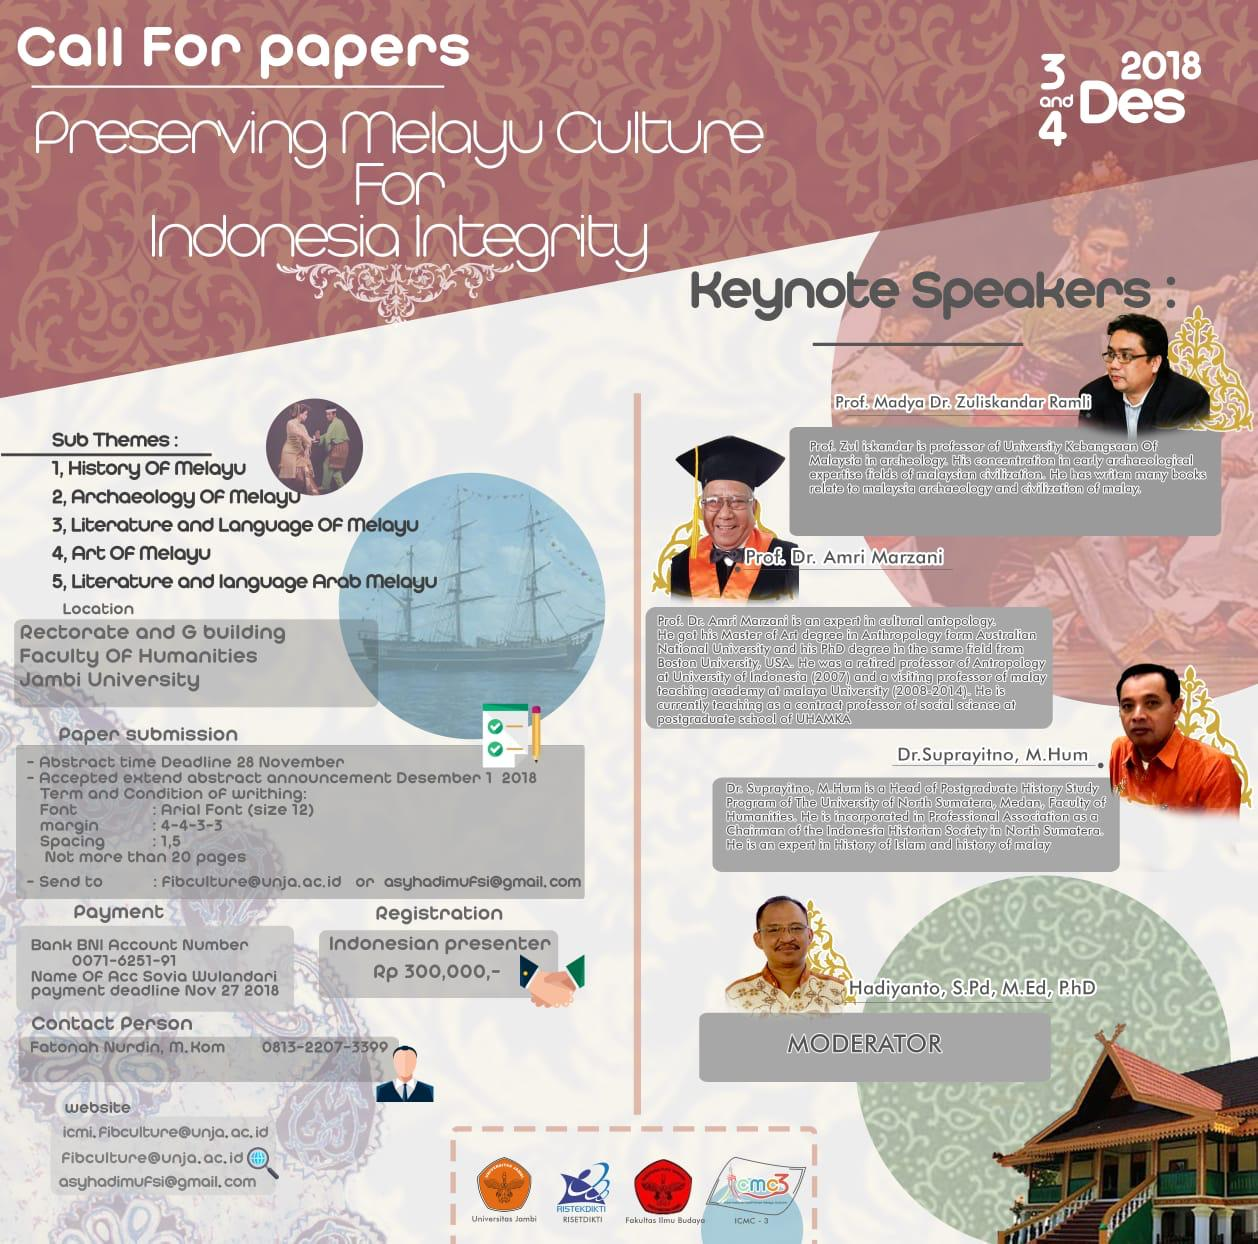 CALL FOR PAPERS PRESERVING MELAYU CULTURE FOR INDONESIA INTEGRITY – Universitas Jambi